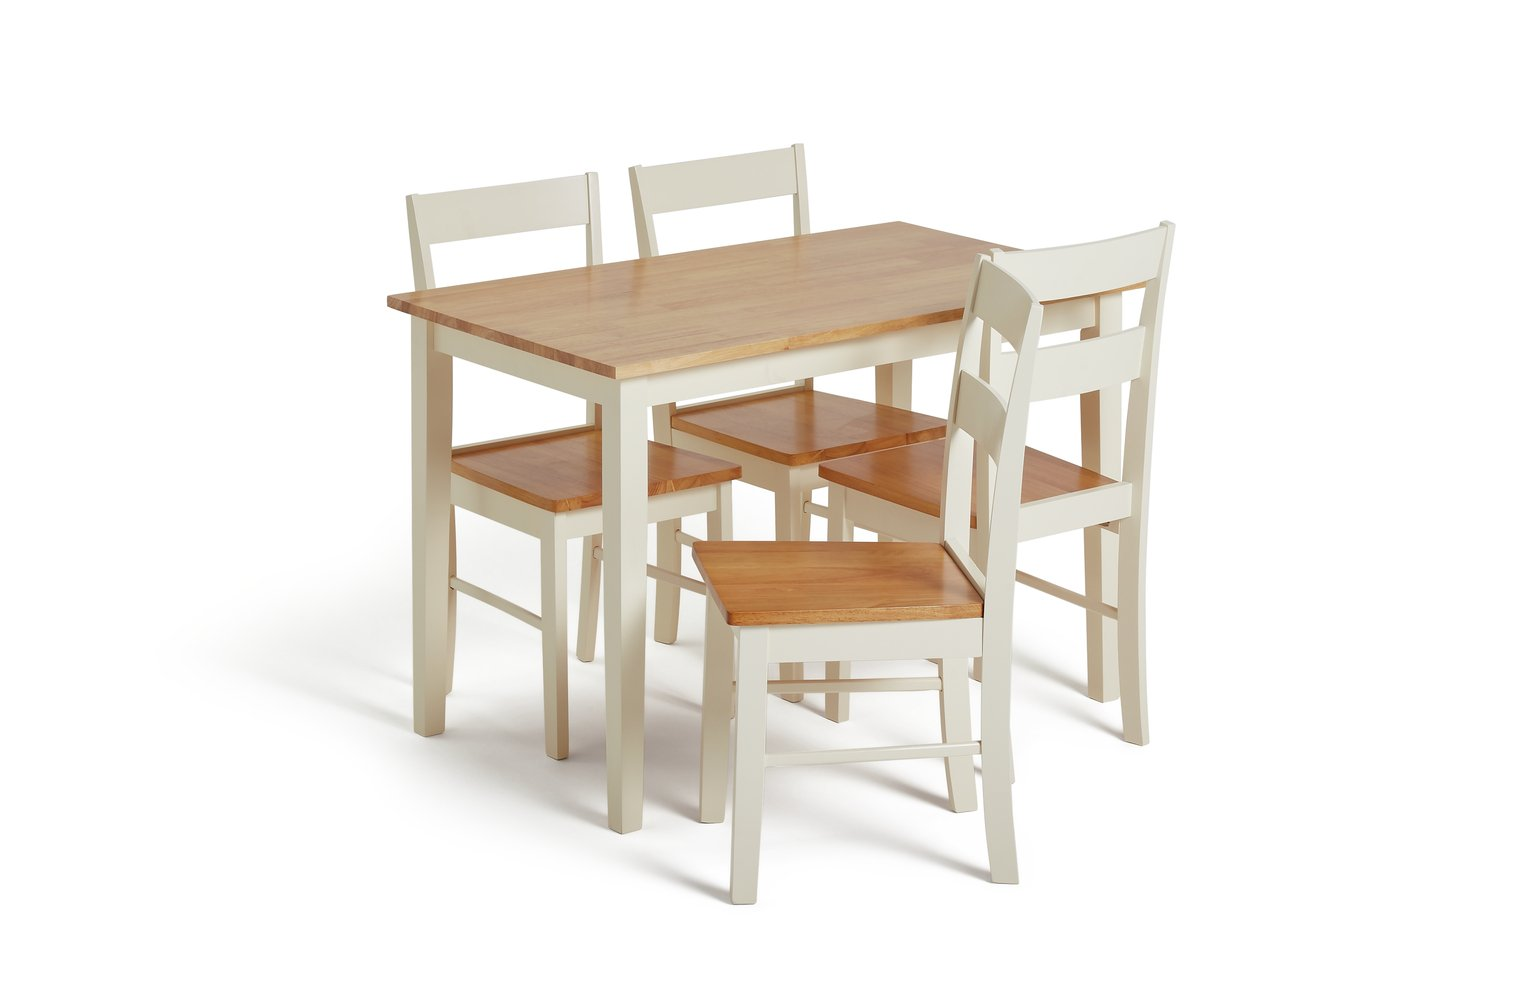 small table for kitchen chairs results 2 argos home chicago solid wood 4 two tone